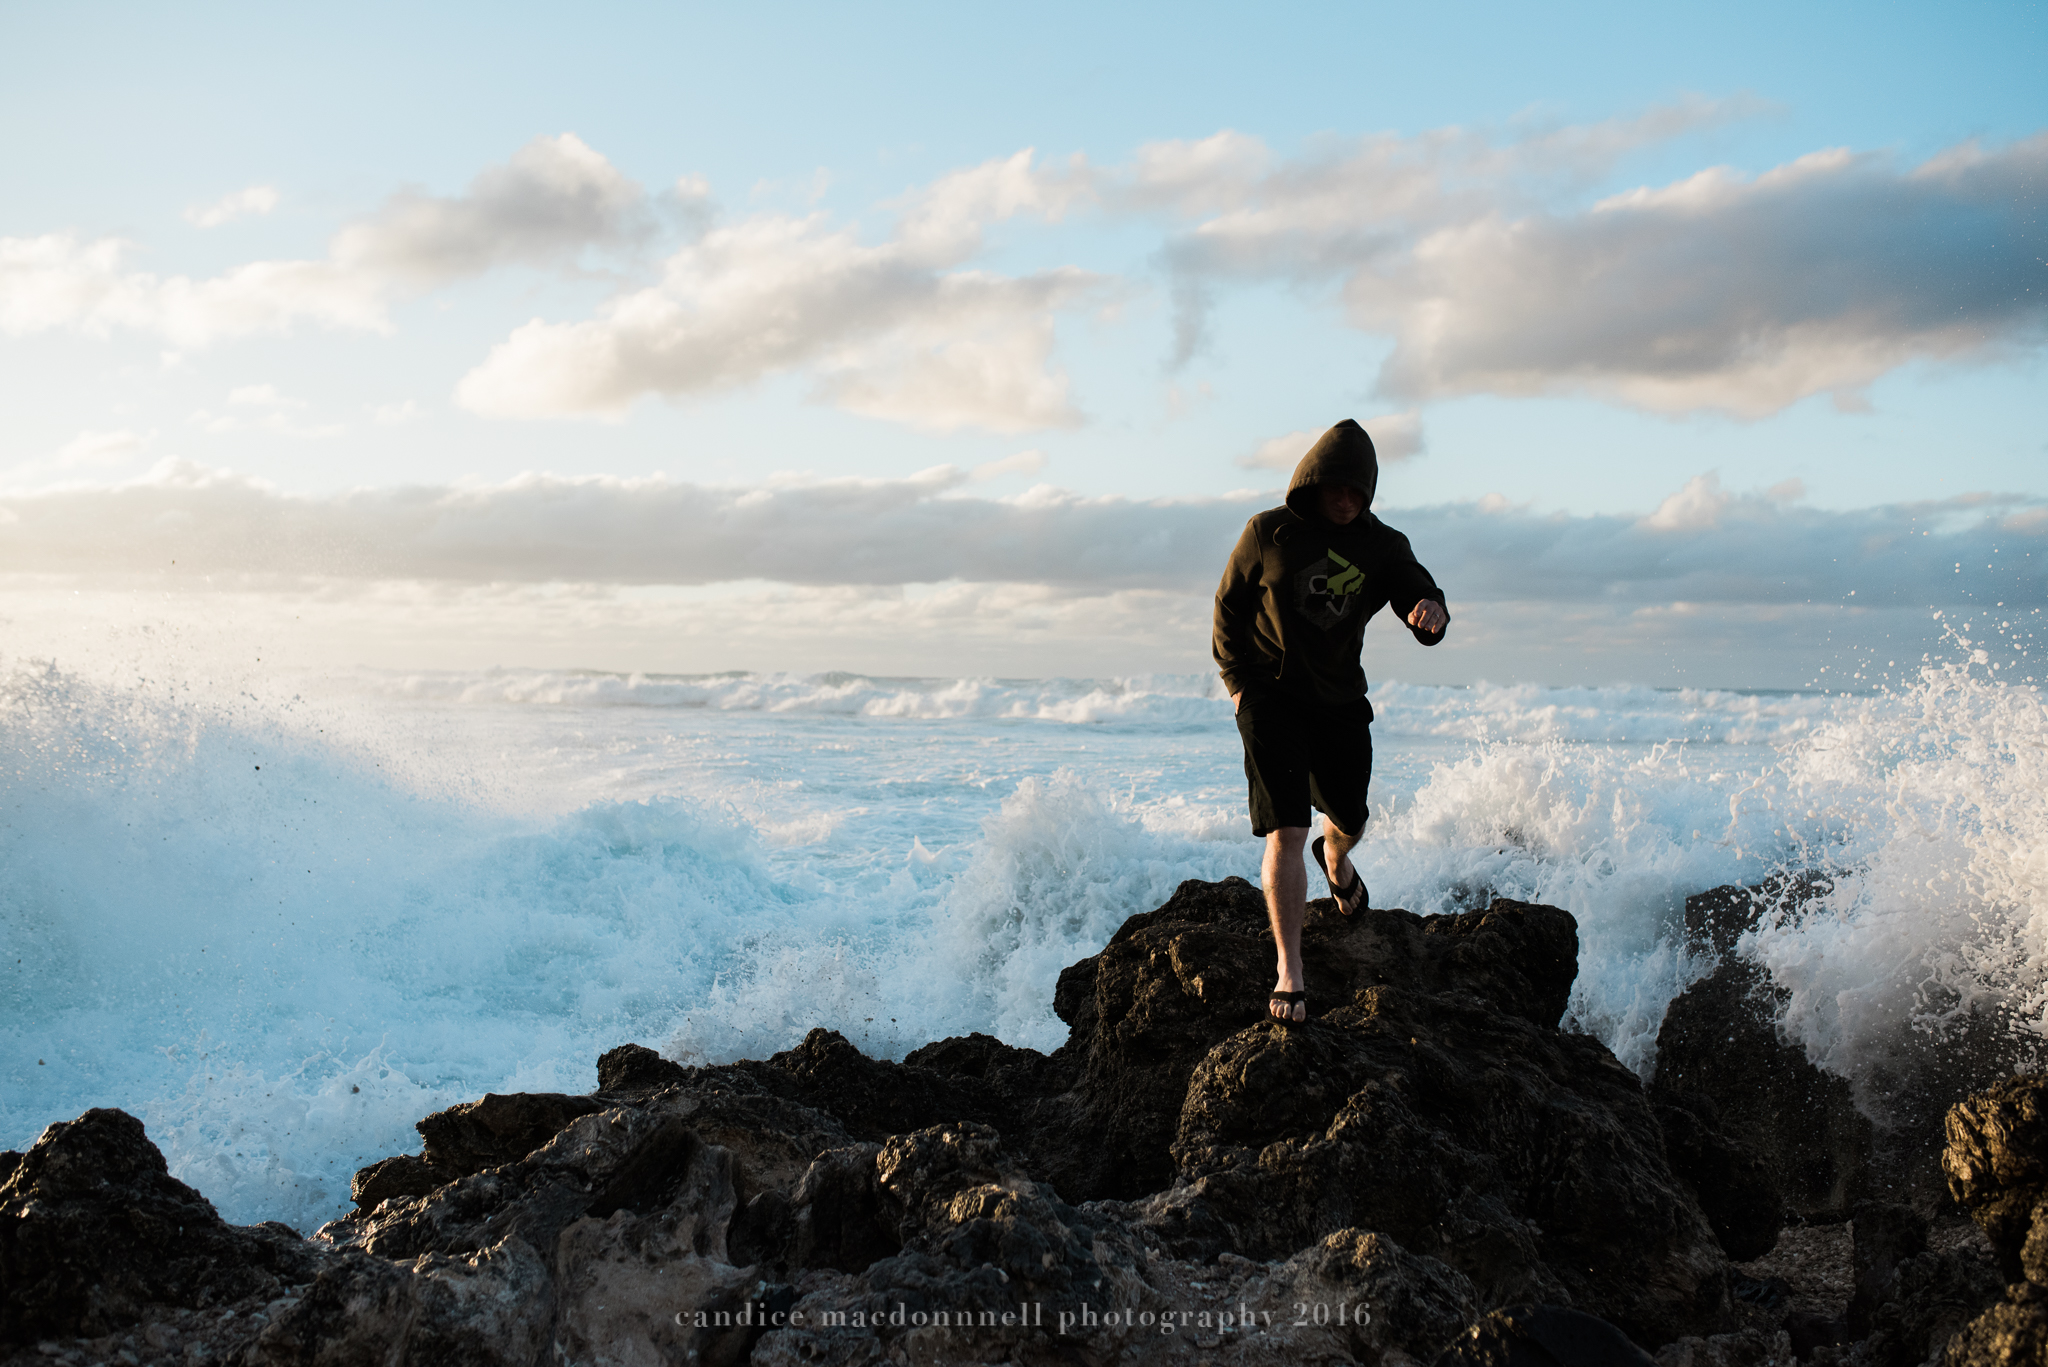 huge waves at kaena point beach lifestyle photography by candice macdonnell photography, oahu hawaii documentary photographer